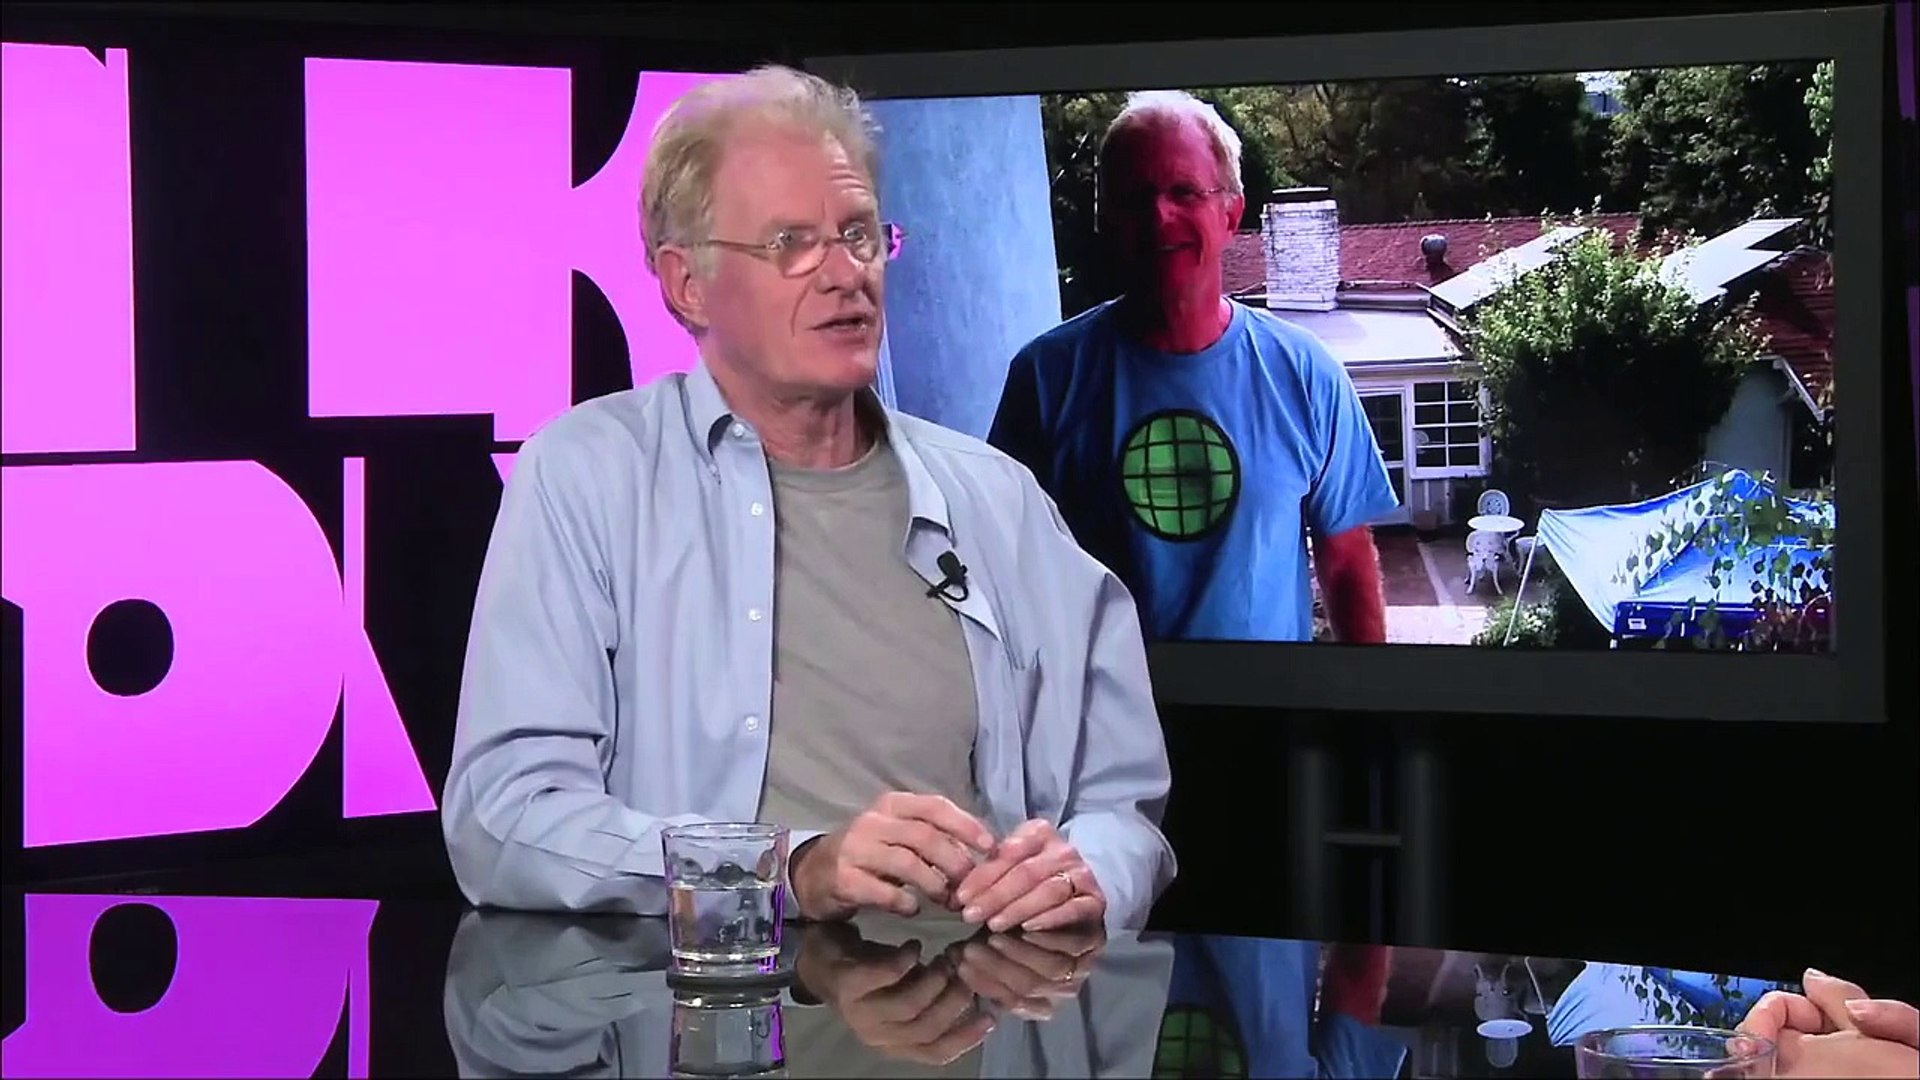 California Drought and Bracing for Climate Change with Ed Begley Jr.